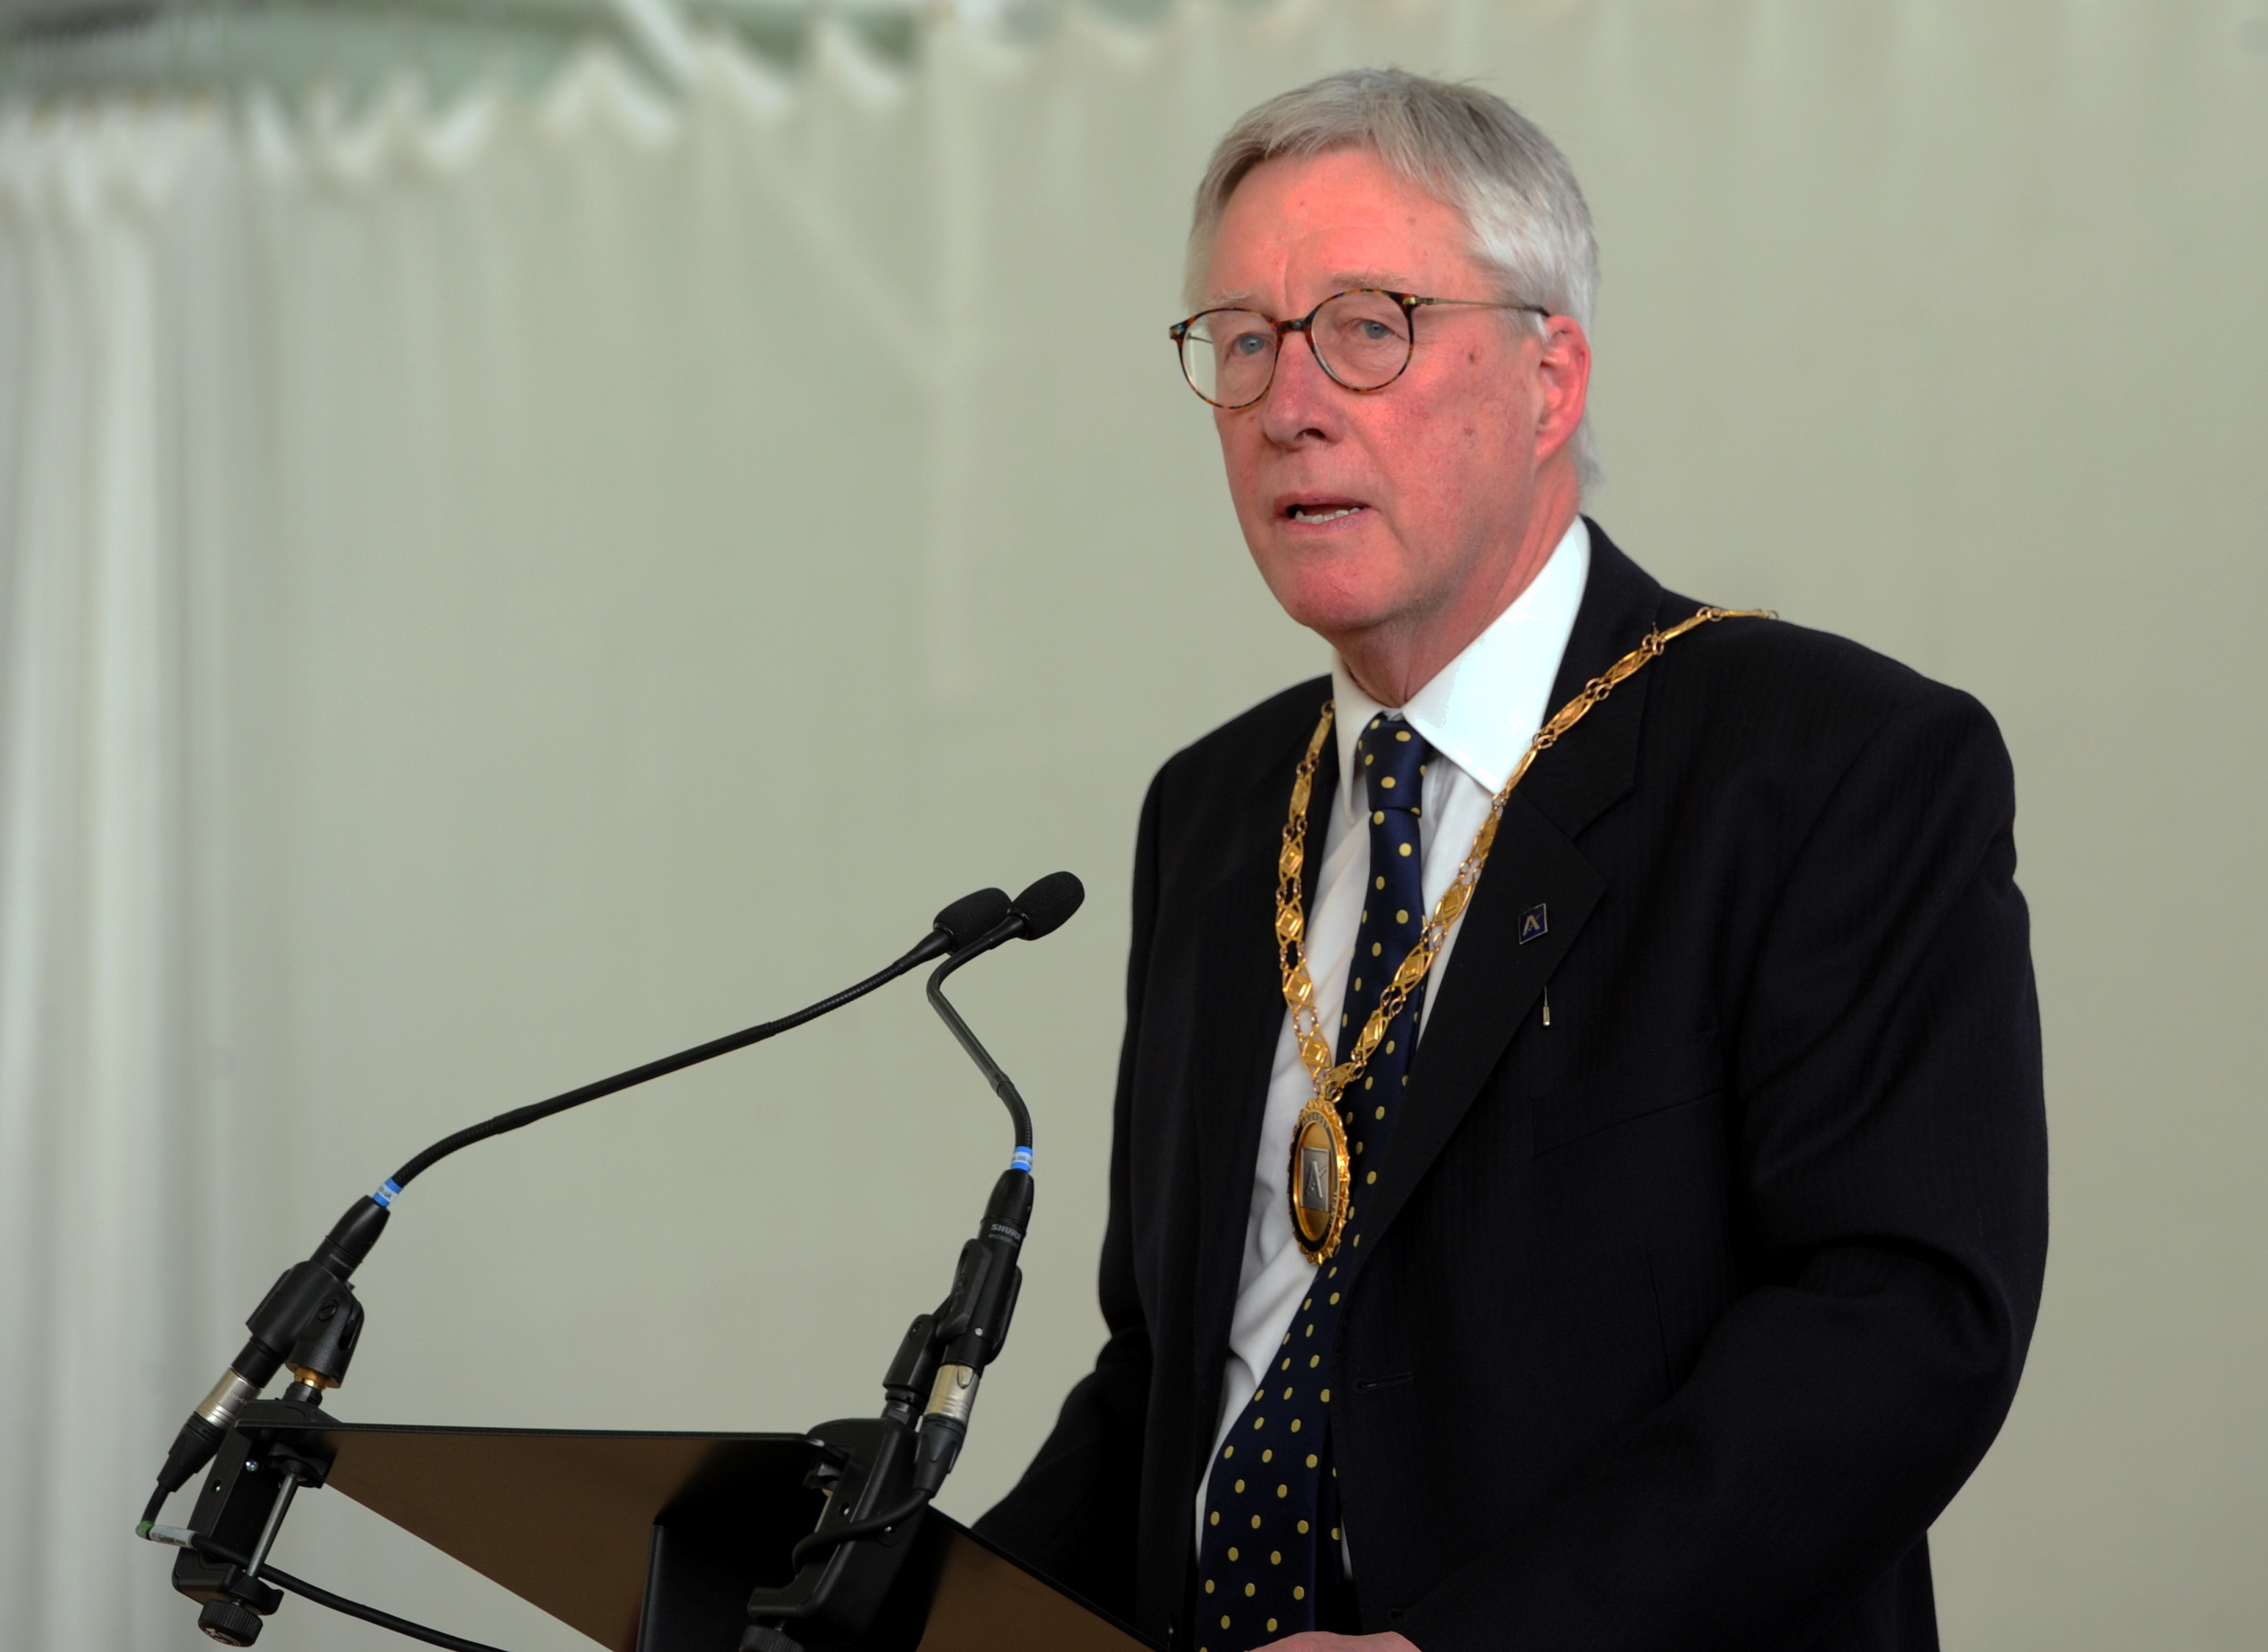 Lord provost Bill Howatson